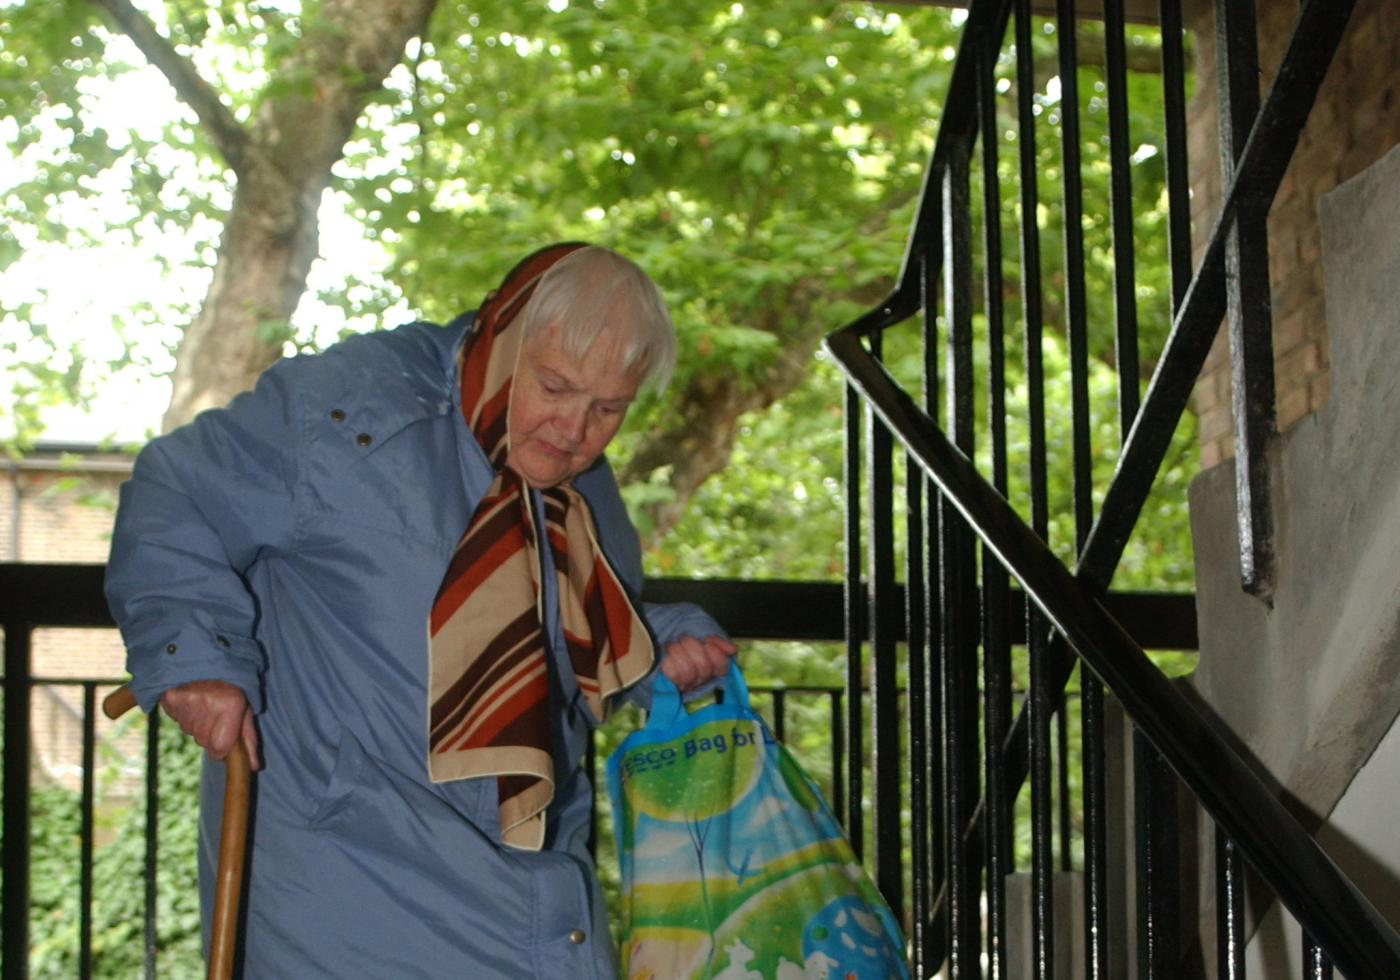 Elderly lady walking down steps with a bag of shopping